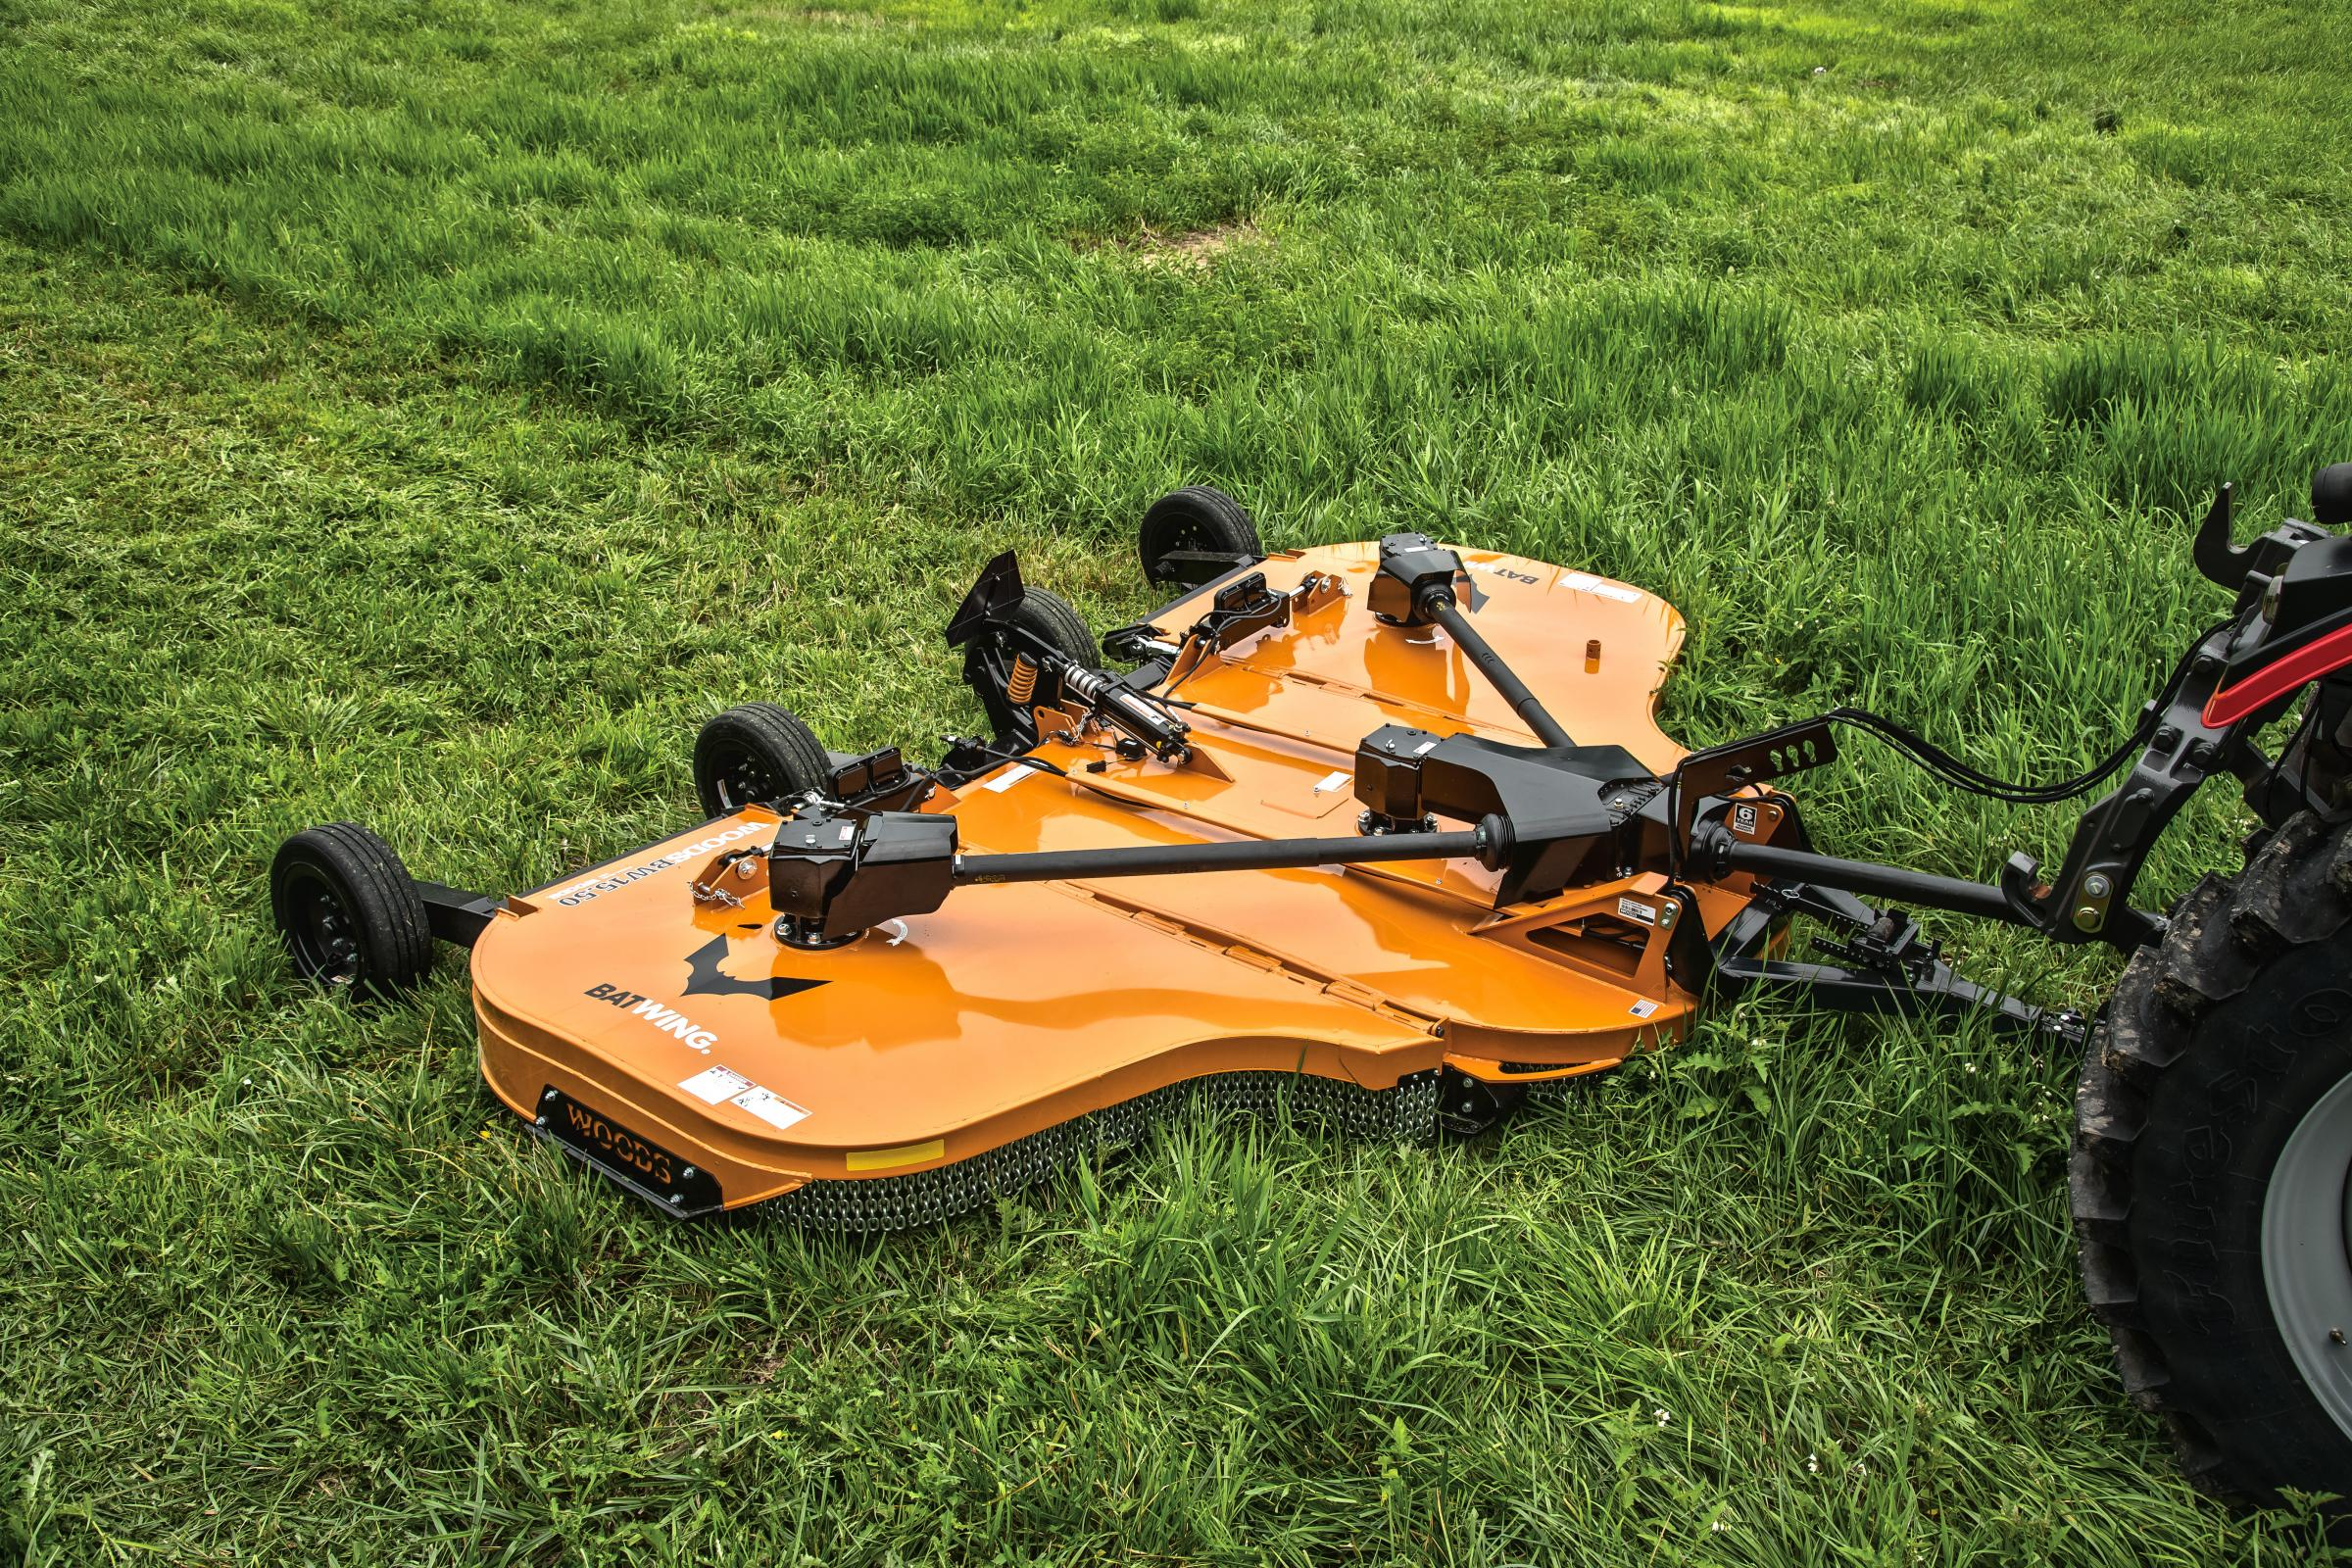 The Woods Batwing mower